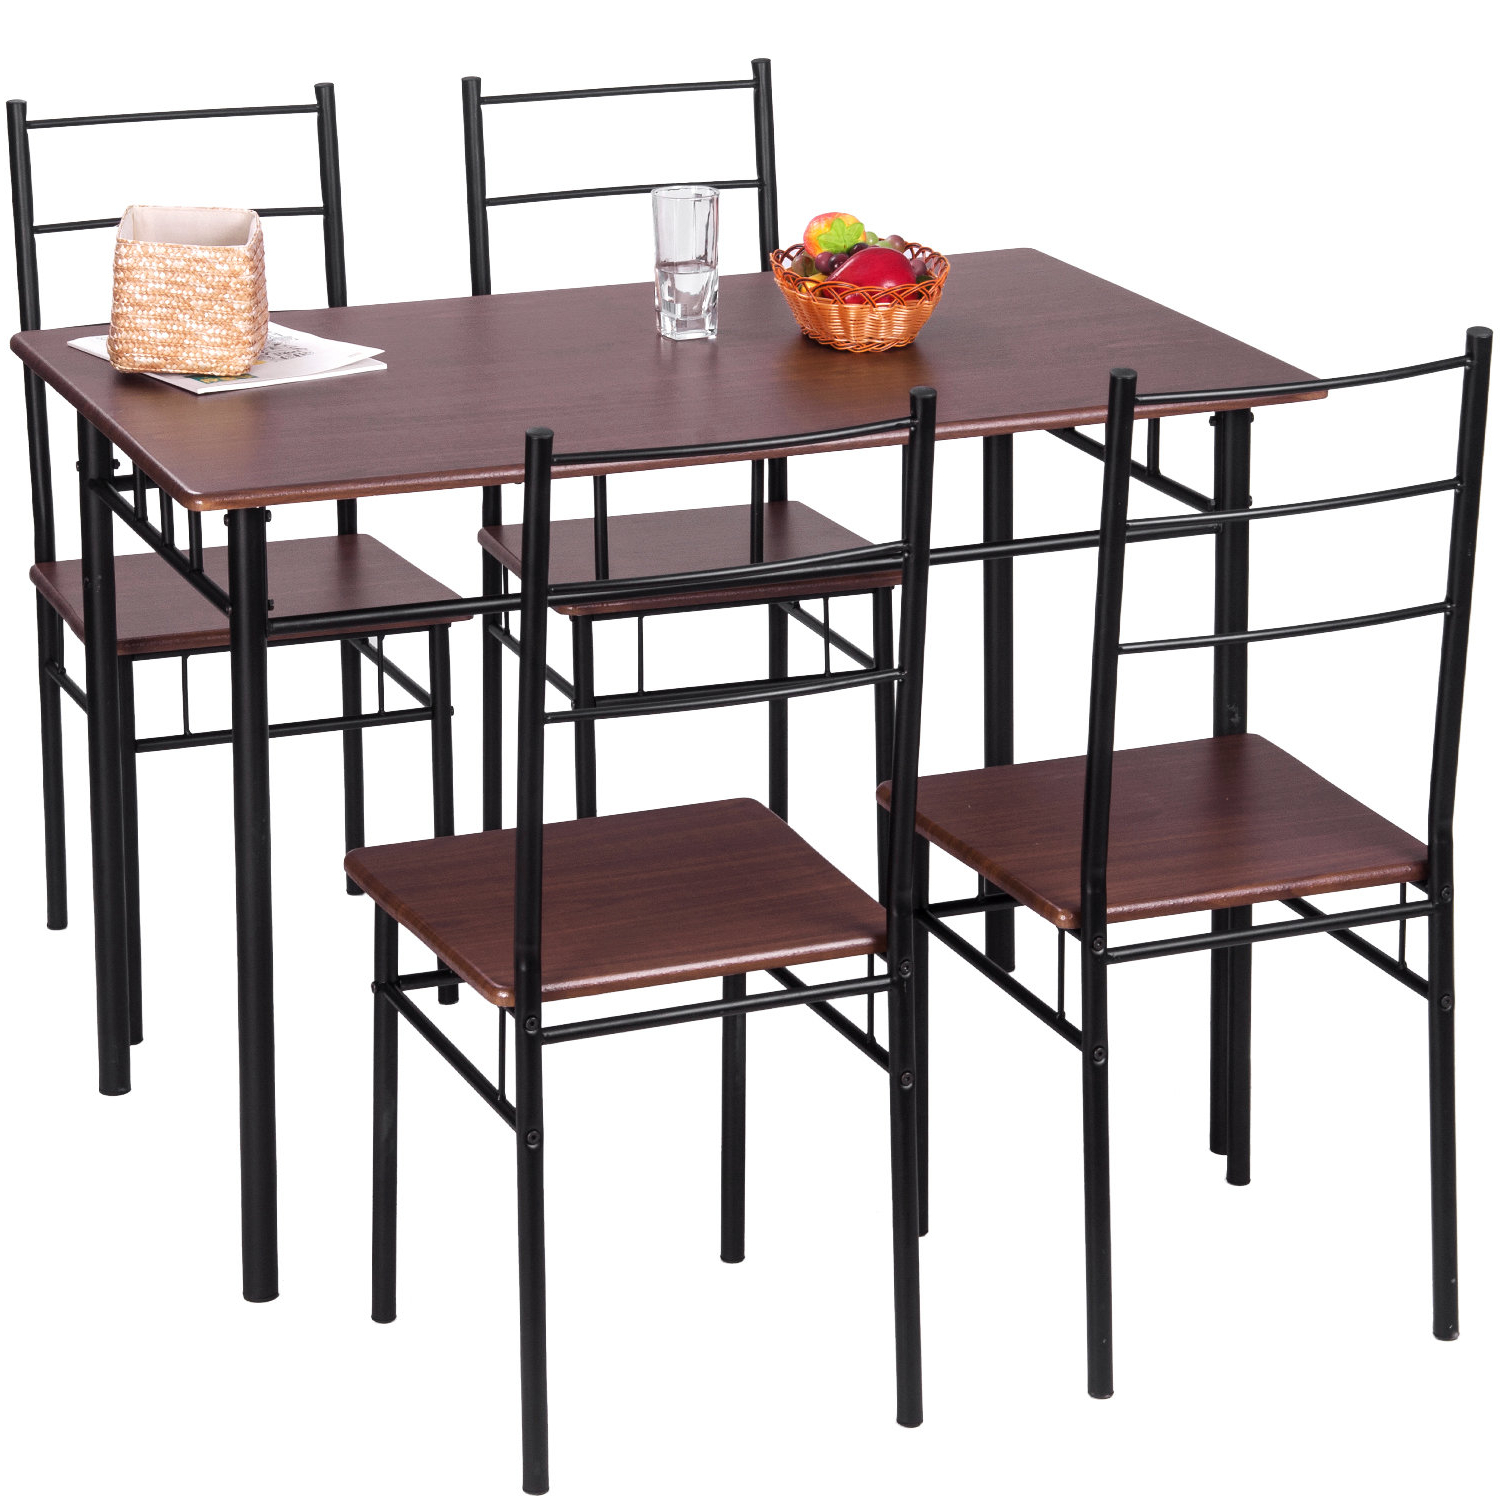 5 Piece Breakfast Nook Dining Set With Regard To Well Known Turnalar 5 Piece Dining Sets (Gallery 13 of 20)